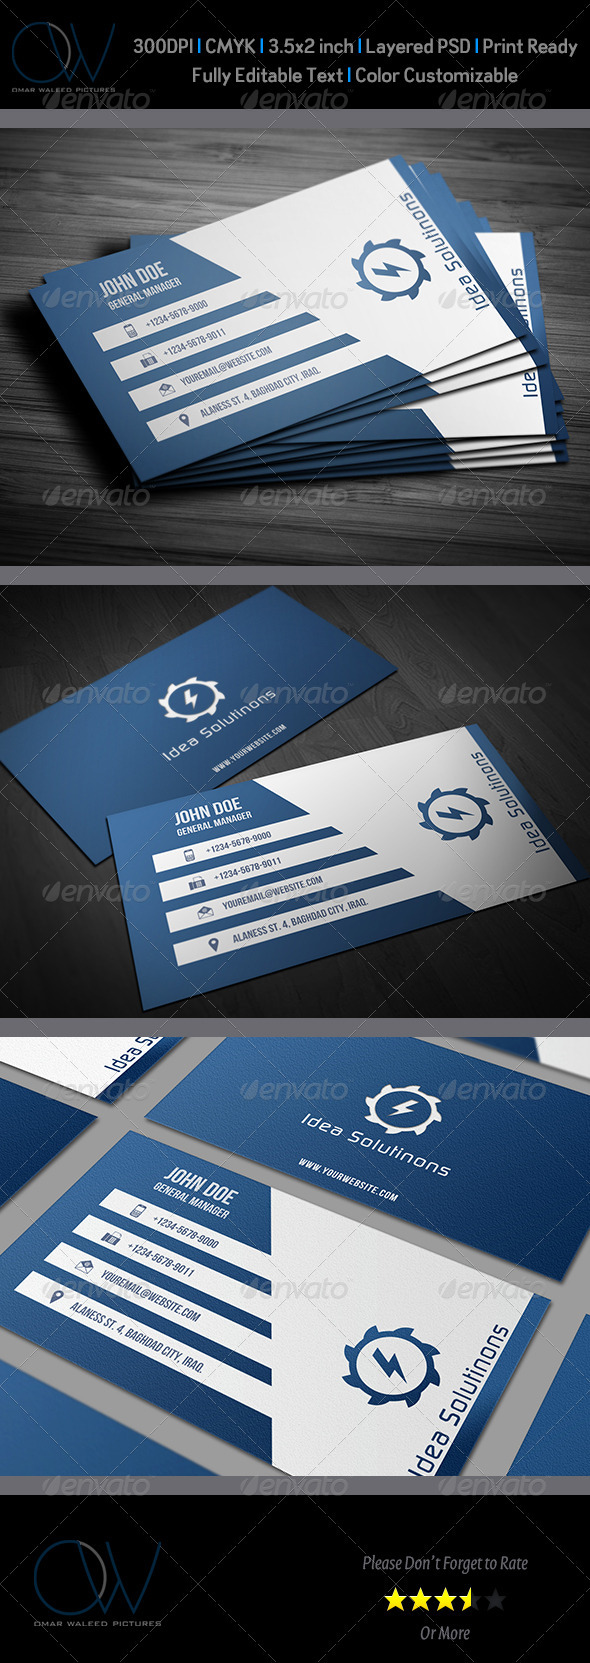 GraphicRiver Corporate Business Card Vol.10 3540897